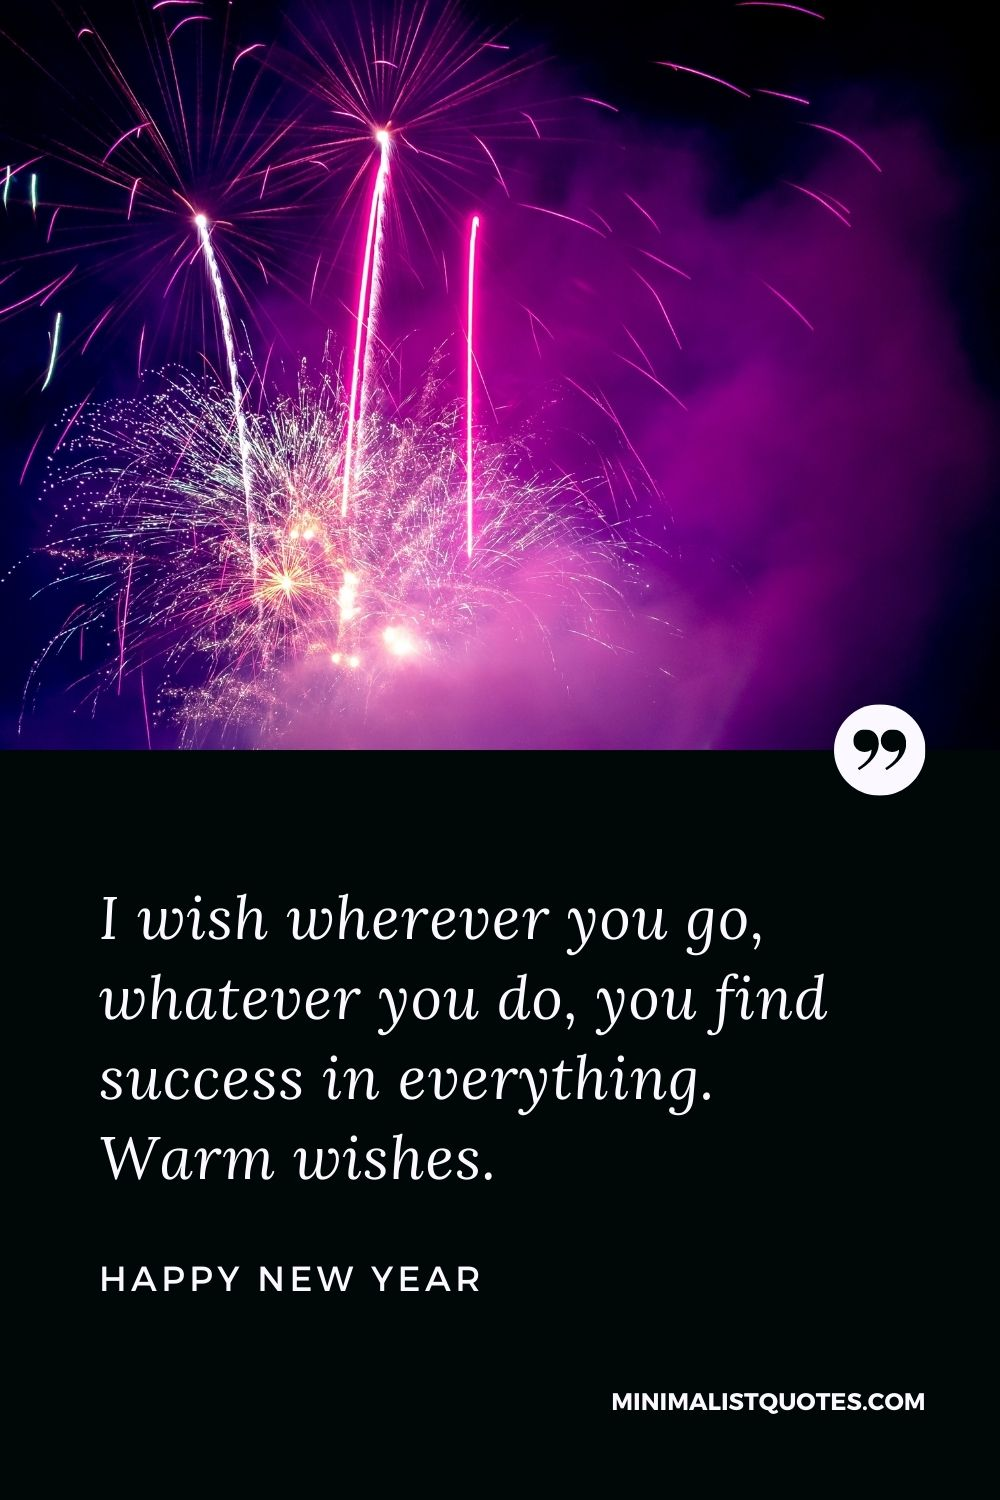 New Year Wish - I wish whereveryou go, whatever you do, you find success in everything. Warm wishes.